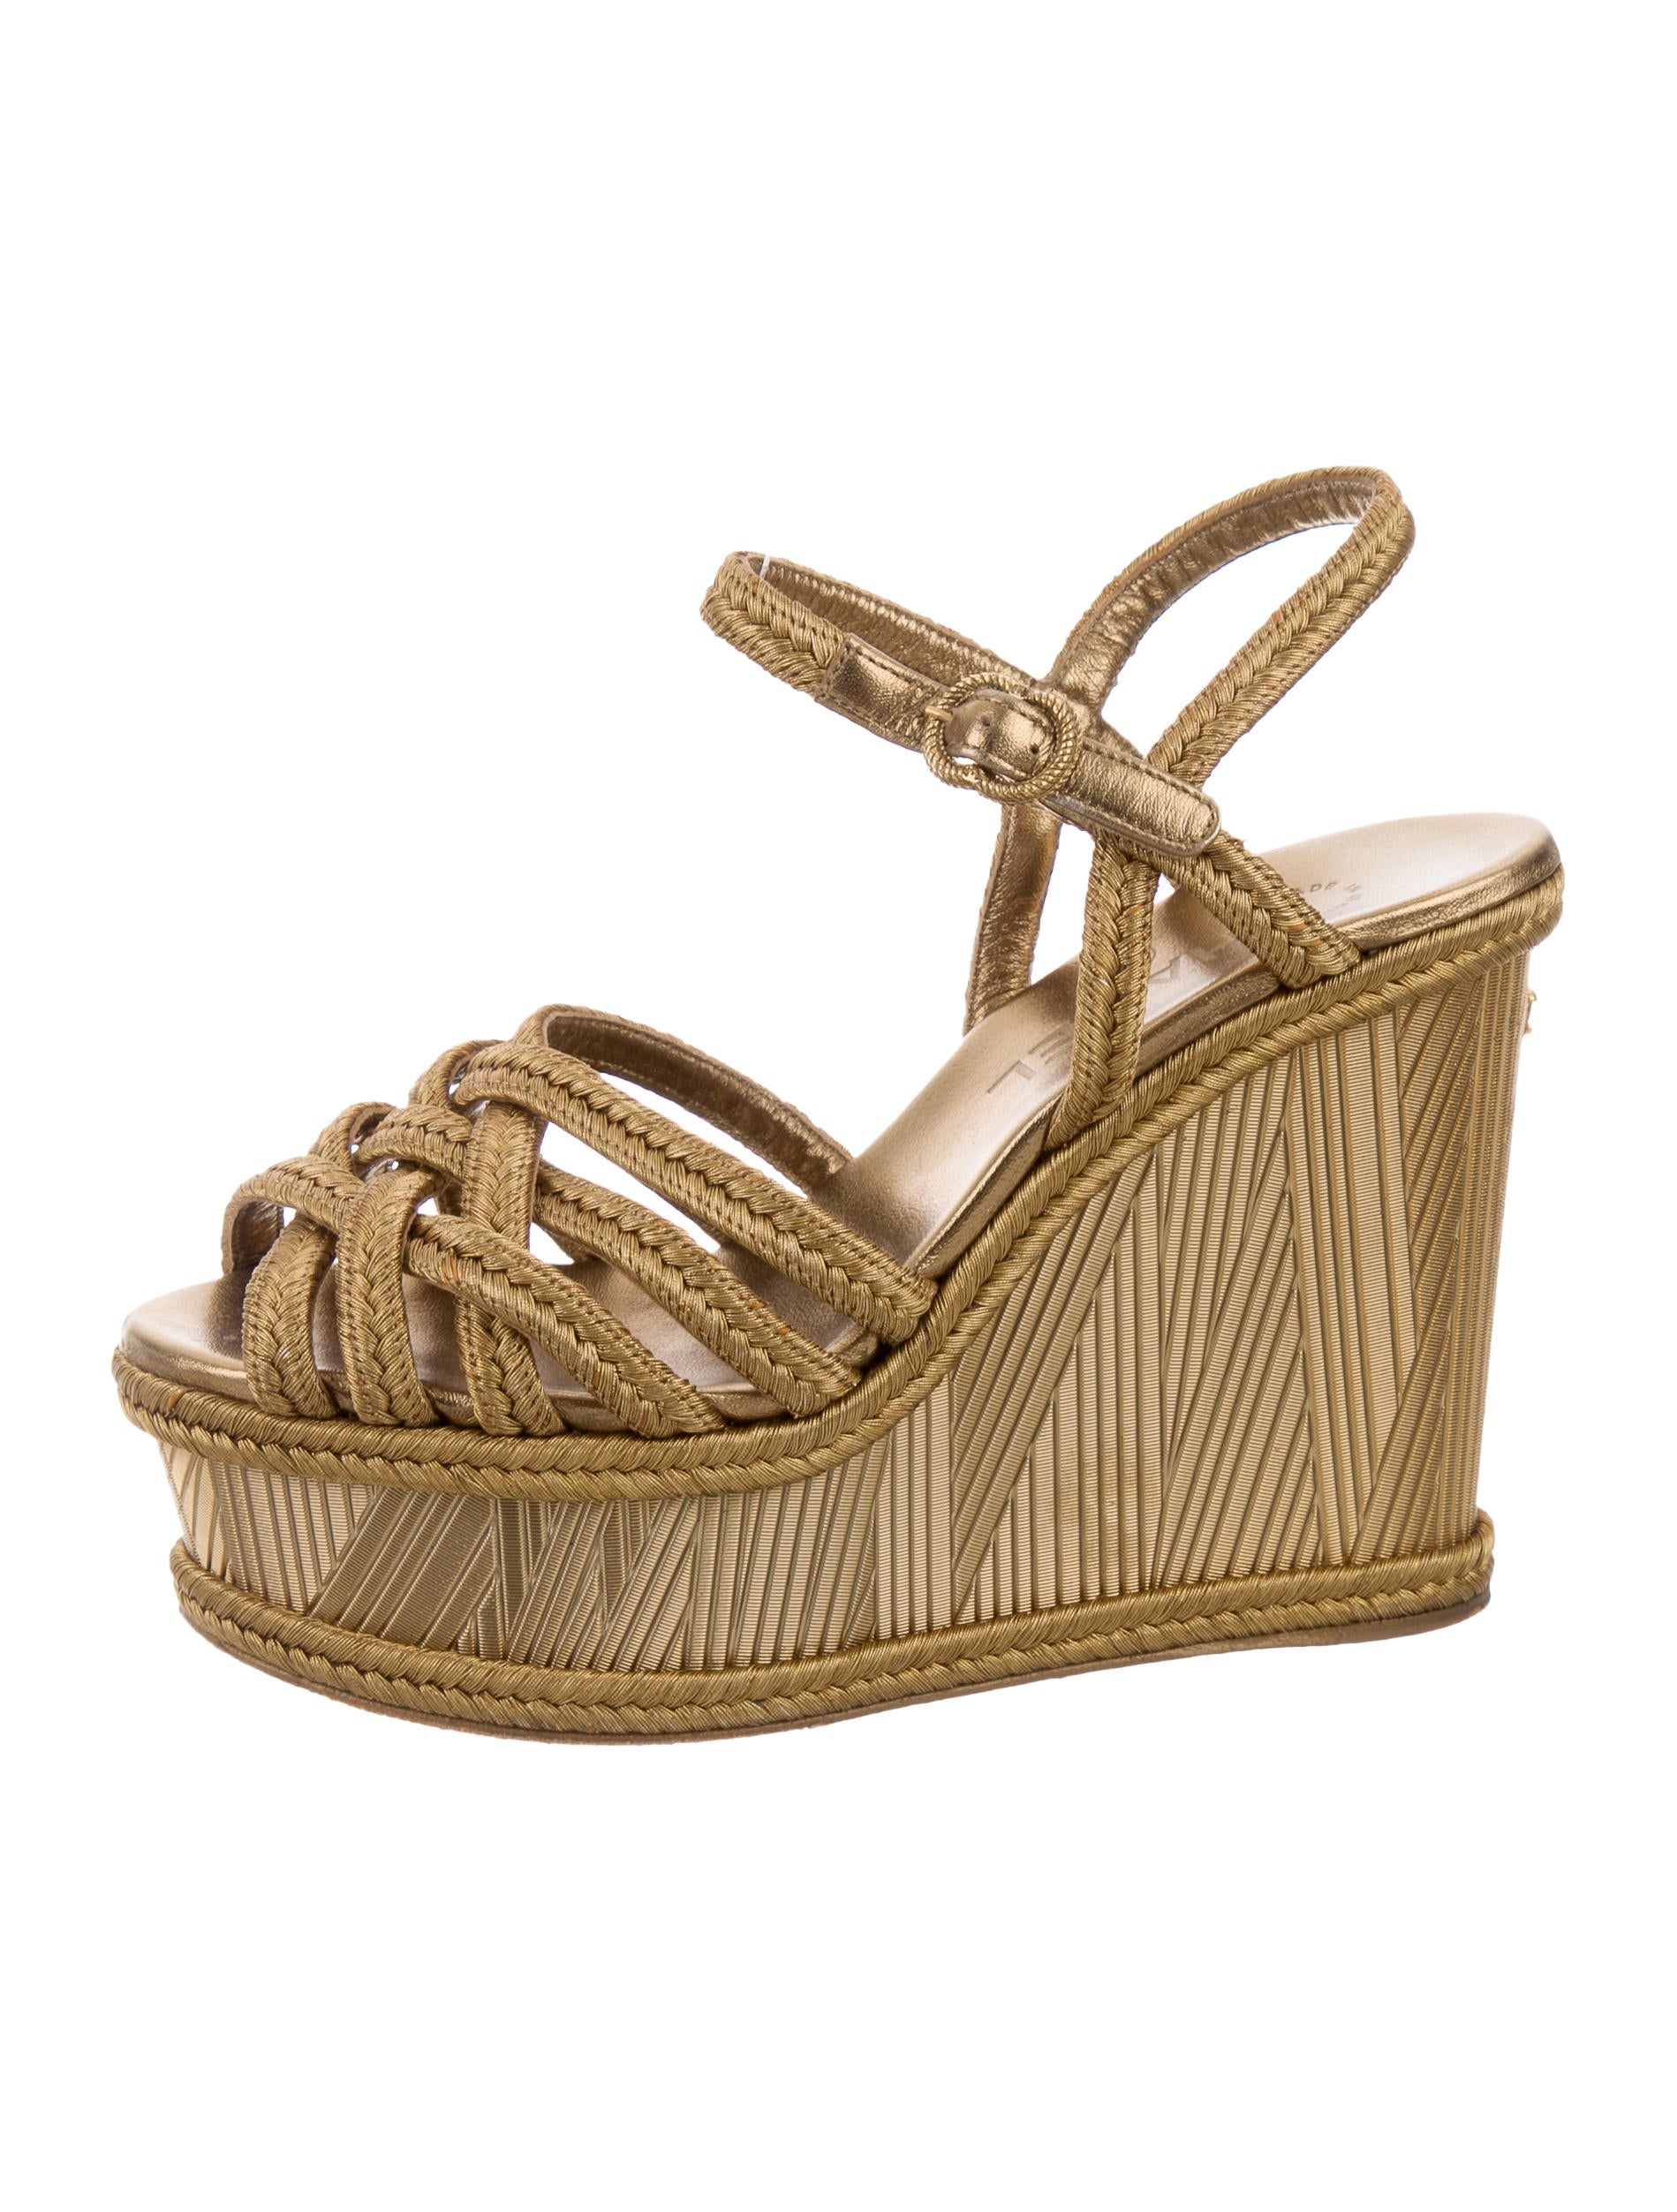 chanel metallic crossover wedges shoes cha158615 the